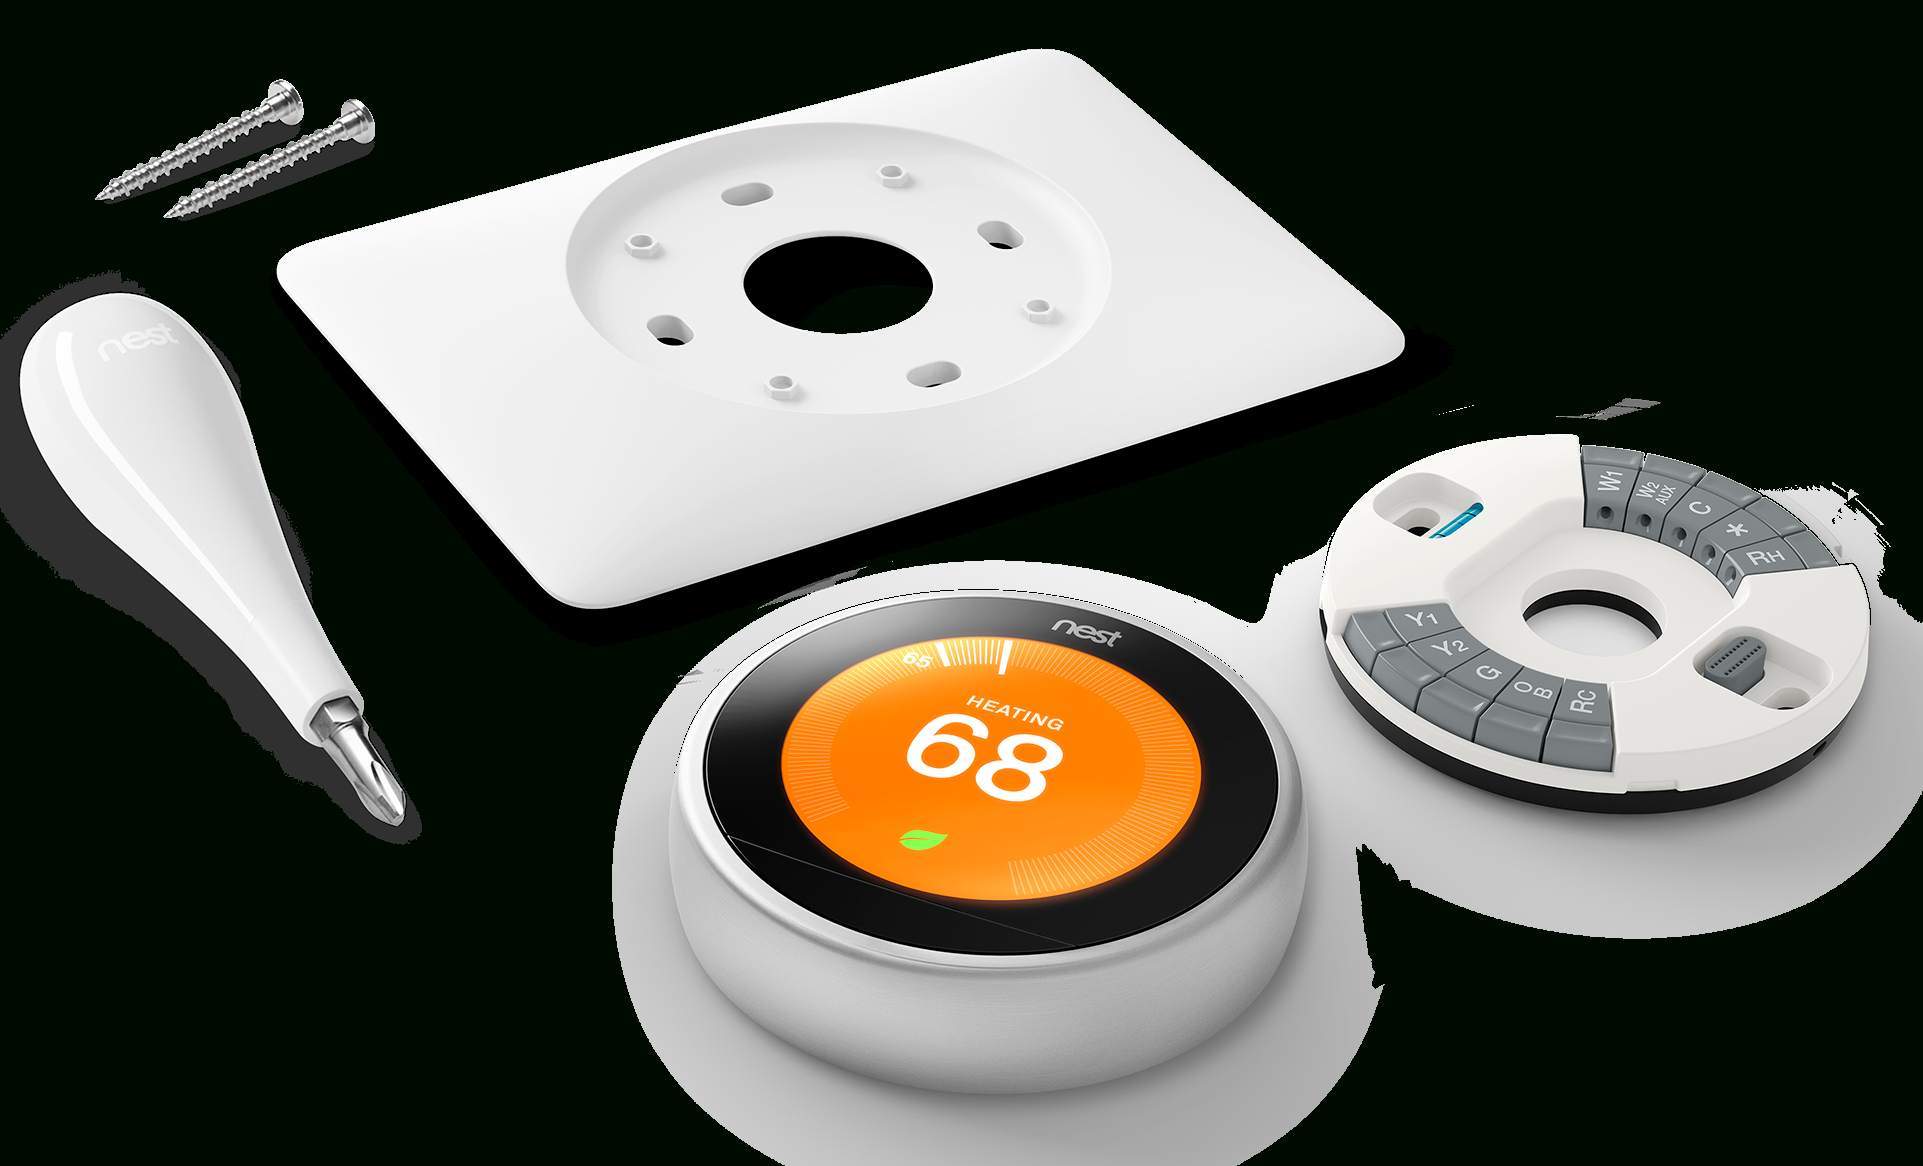 How To Install Your Nest Thermostat - Nest Learning Thermostat Wiring Diagram